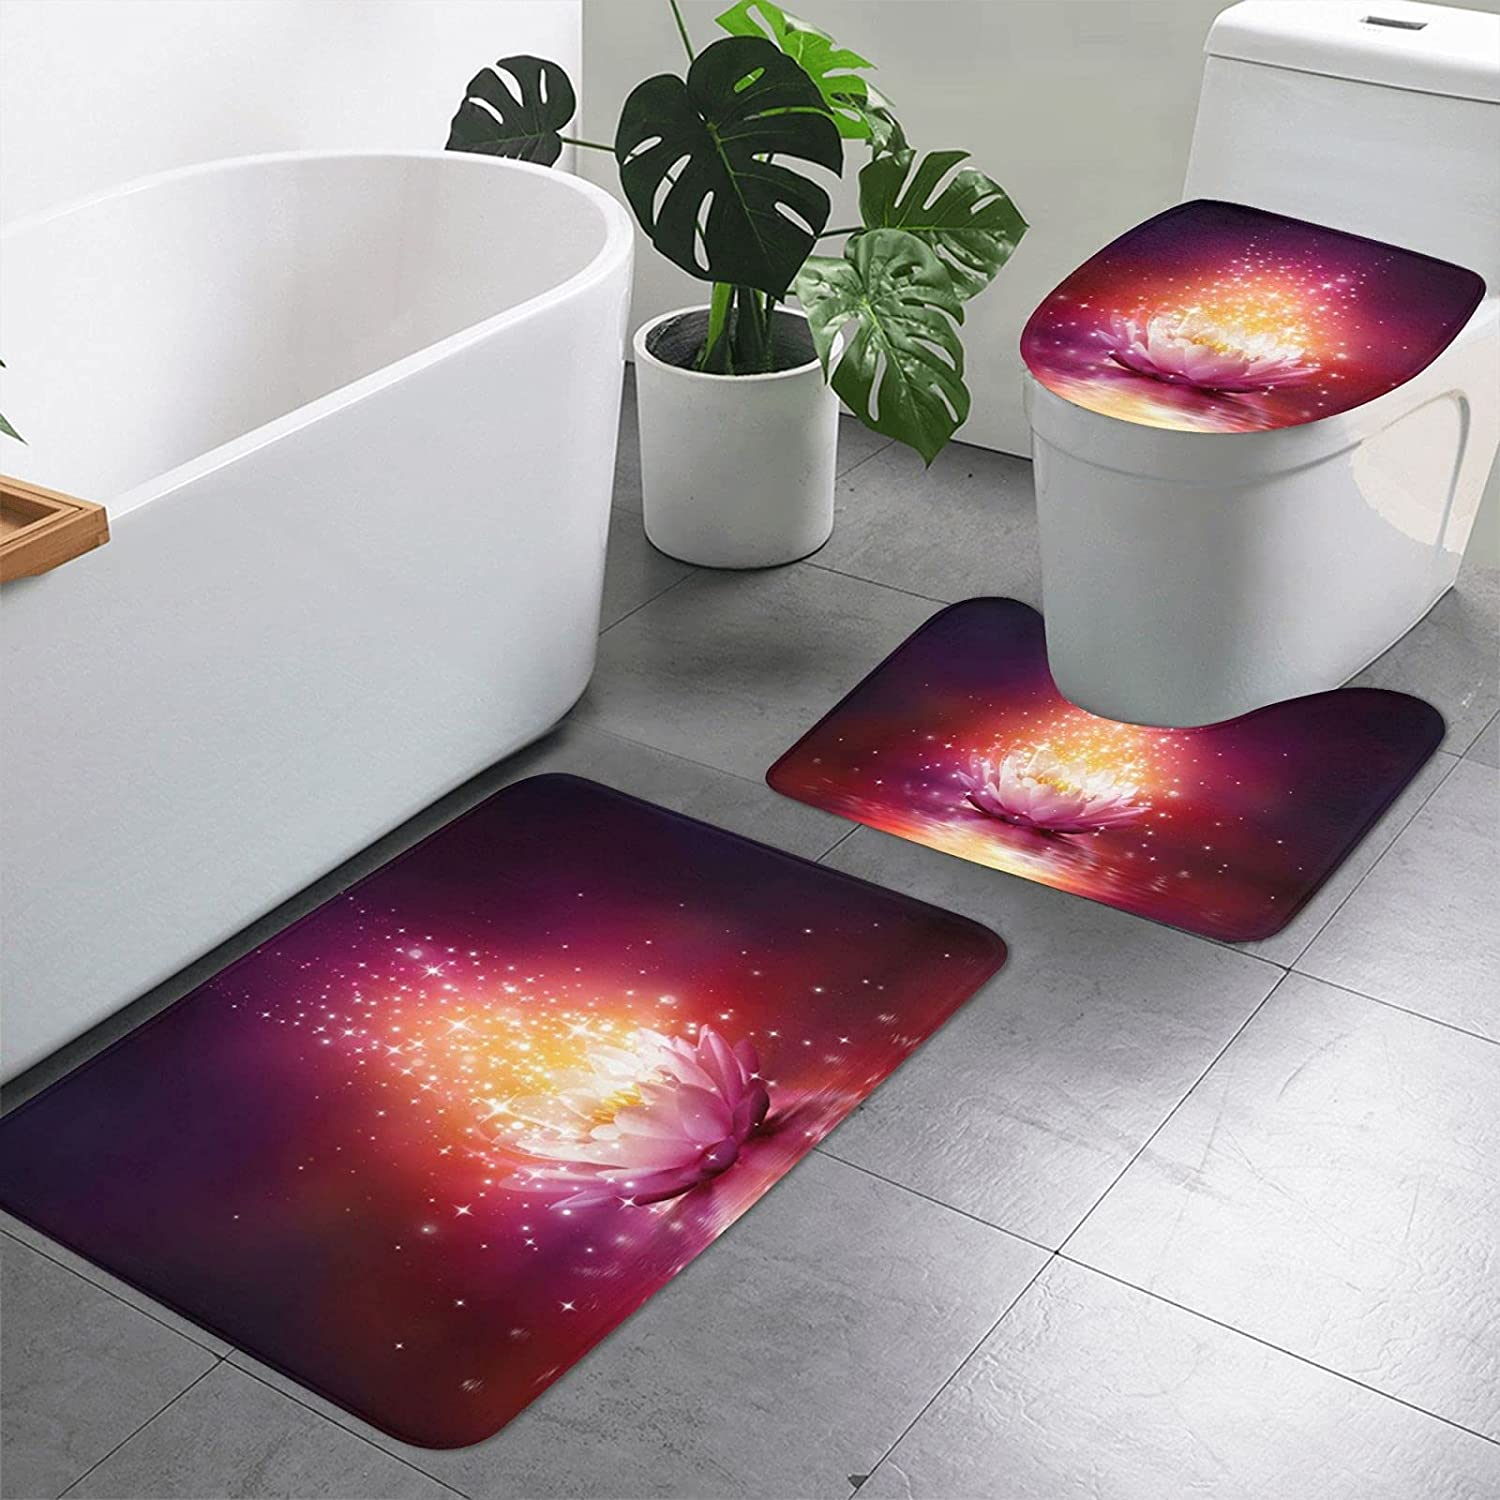 3 Pieces Bathroom Rug Set Includes San Jose Mall 19.7 Inches 15.7 price U-Shaped x